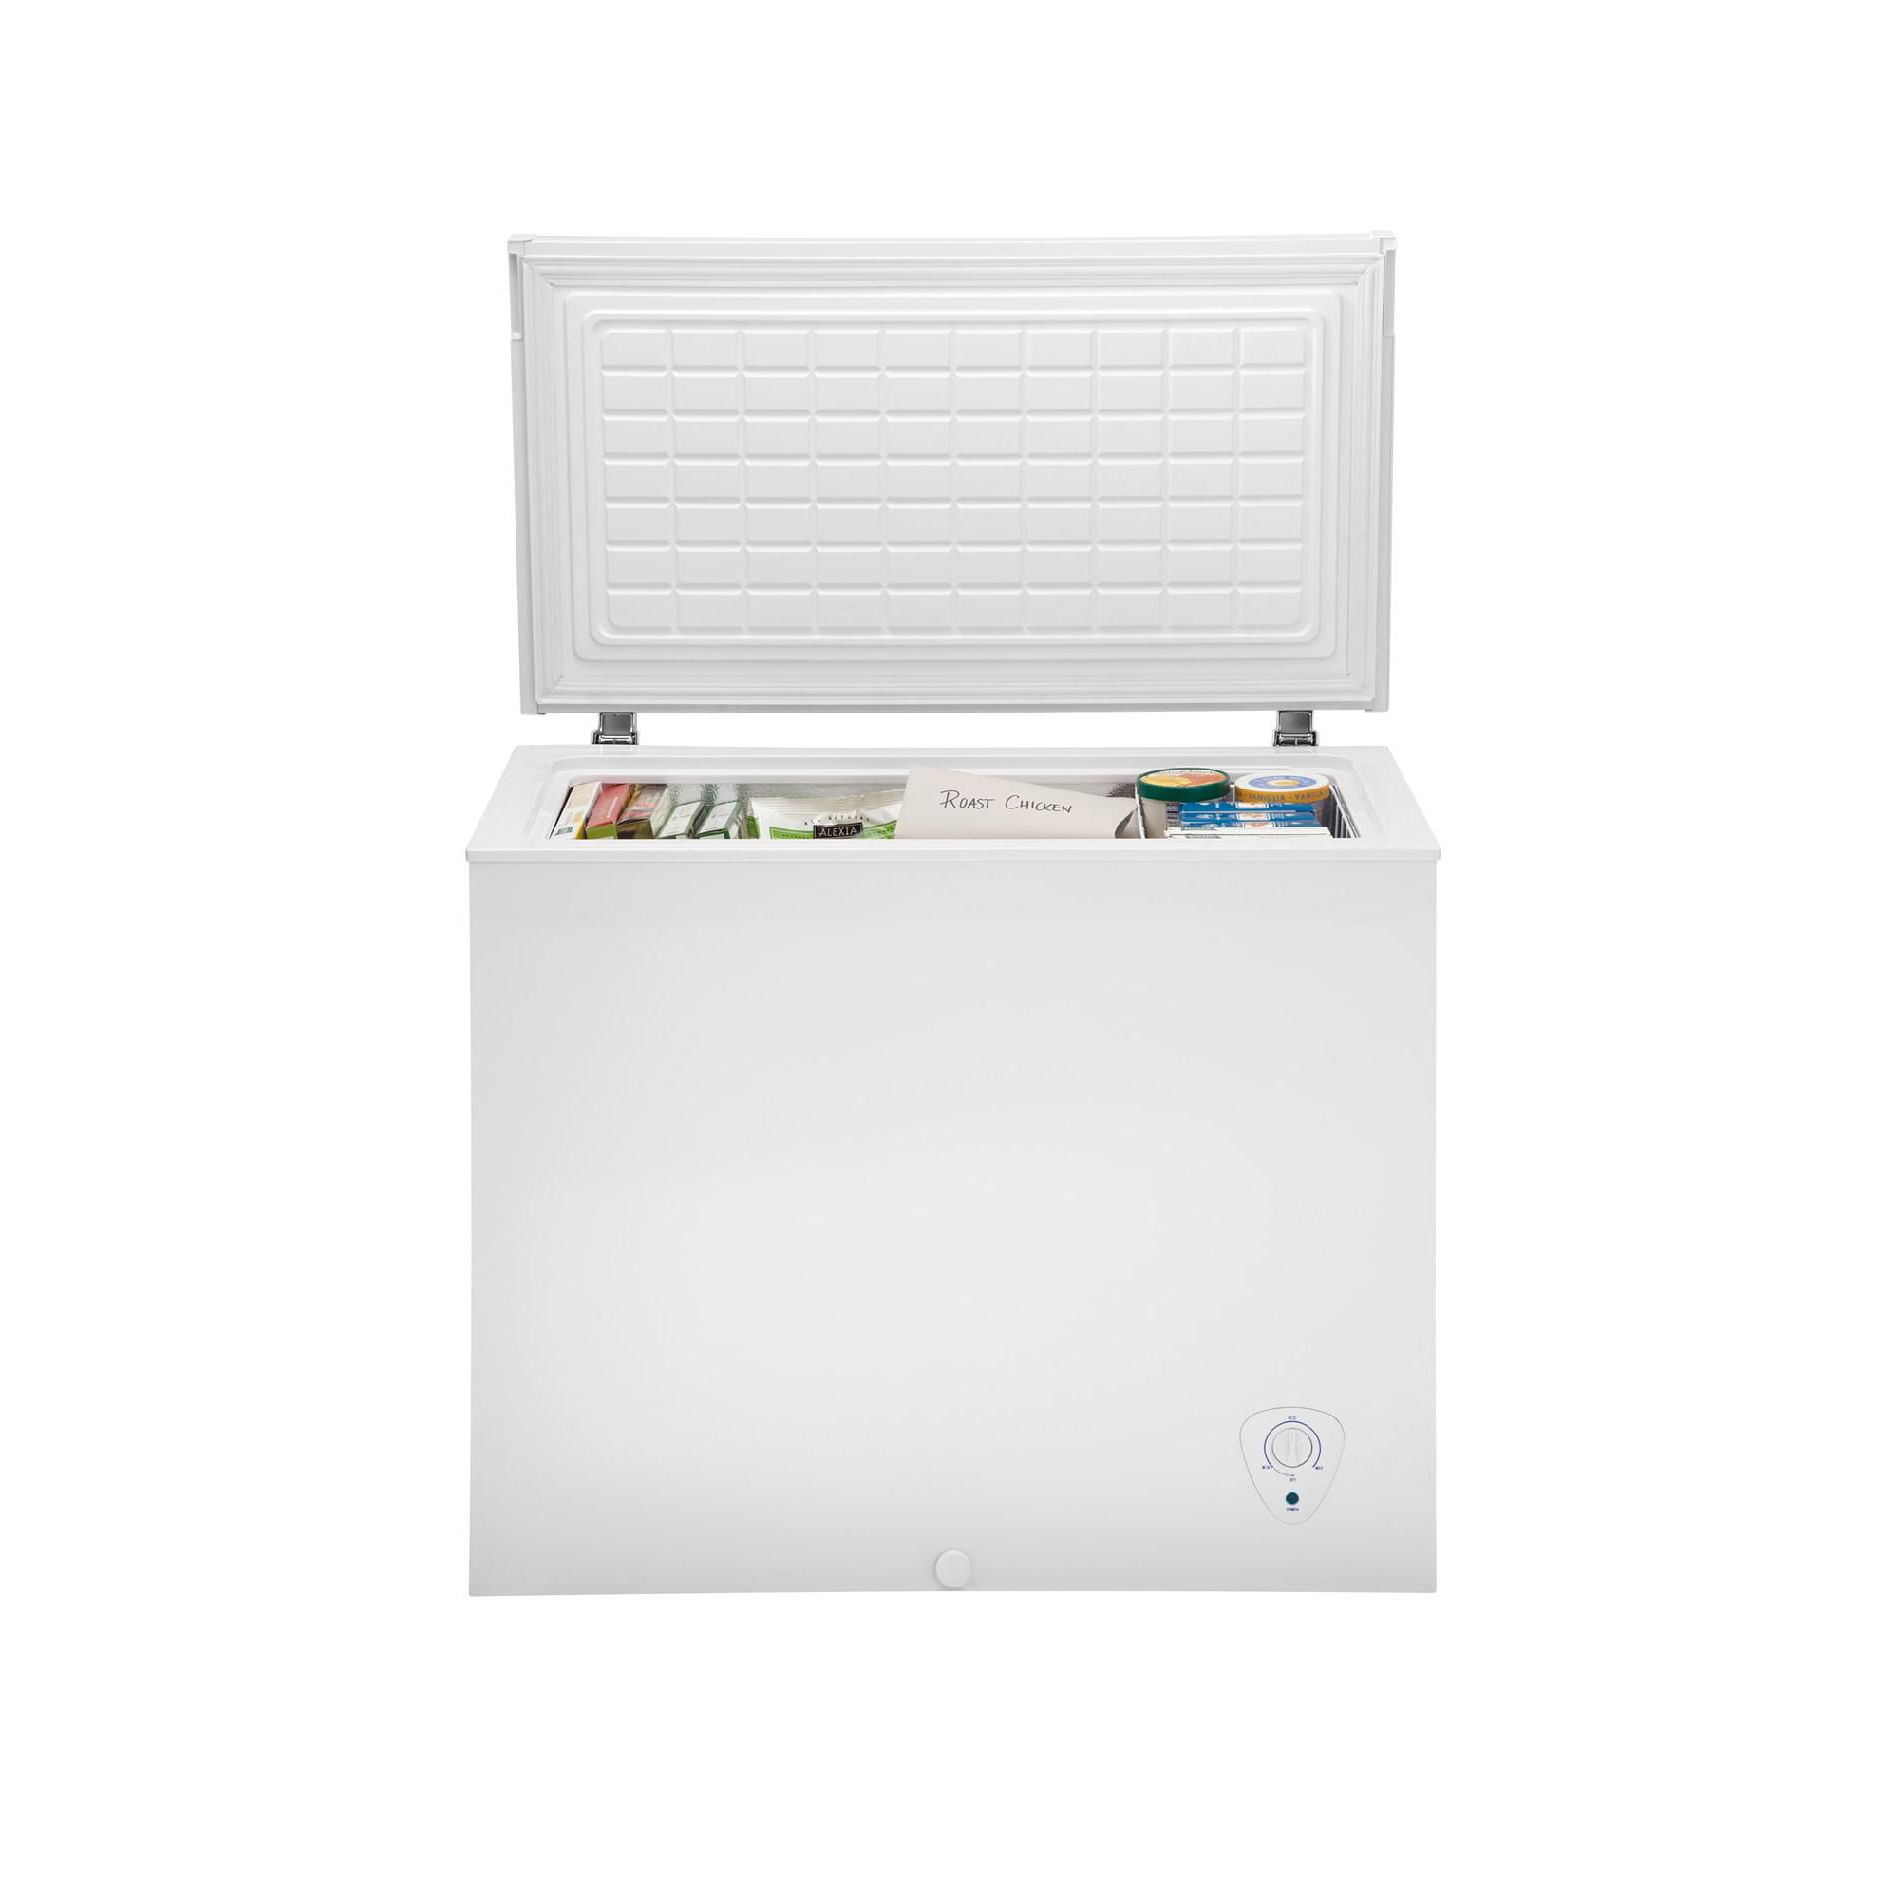 Kenmore 7 2 cu ft Chest Freezer White